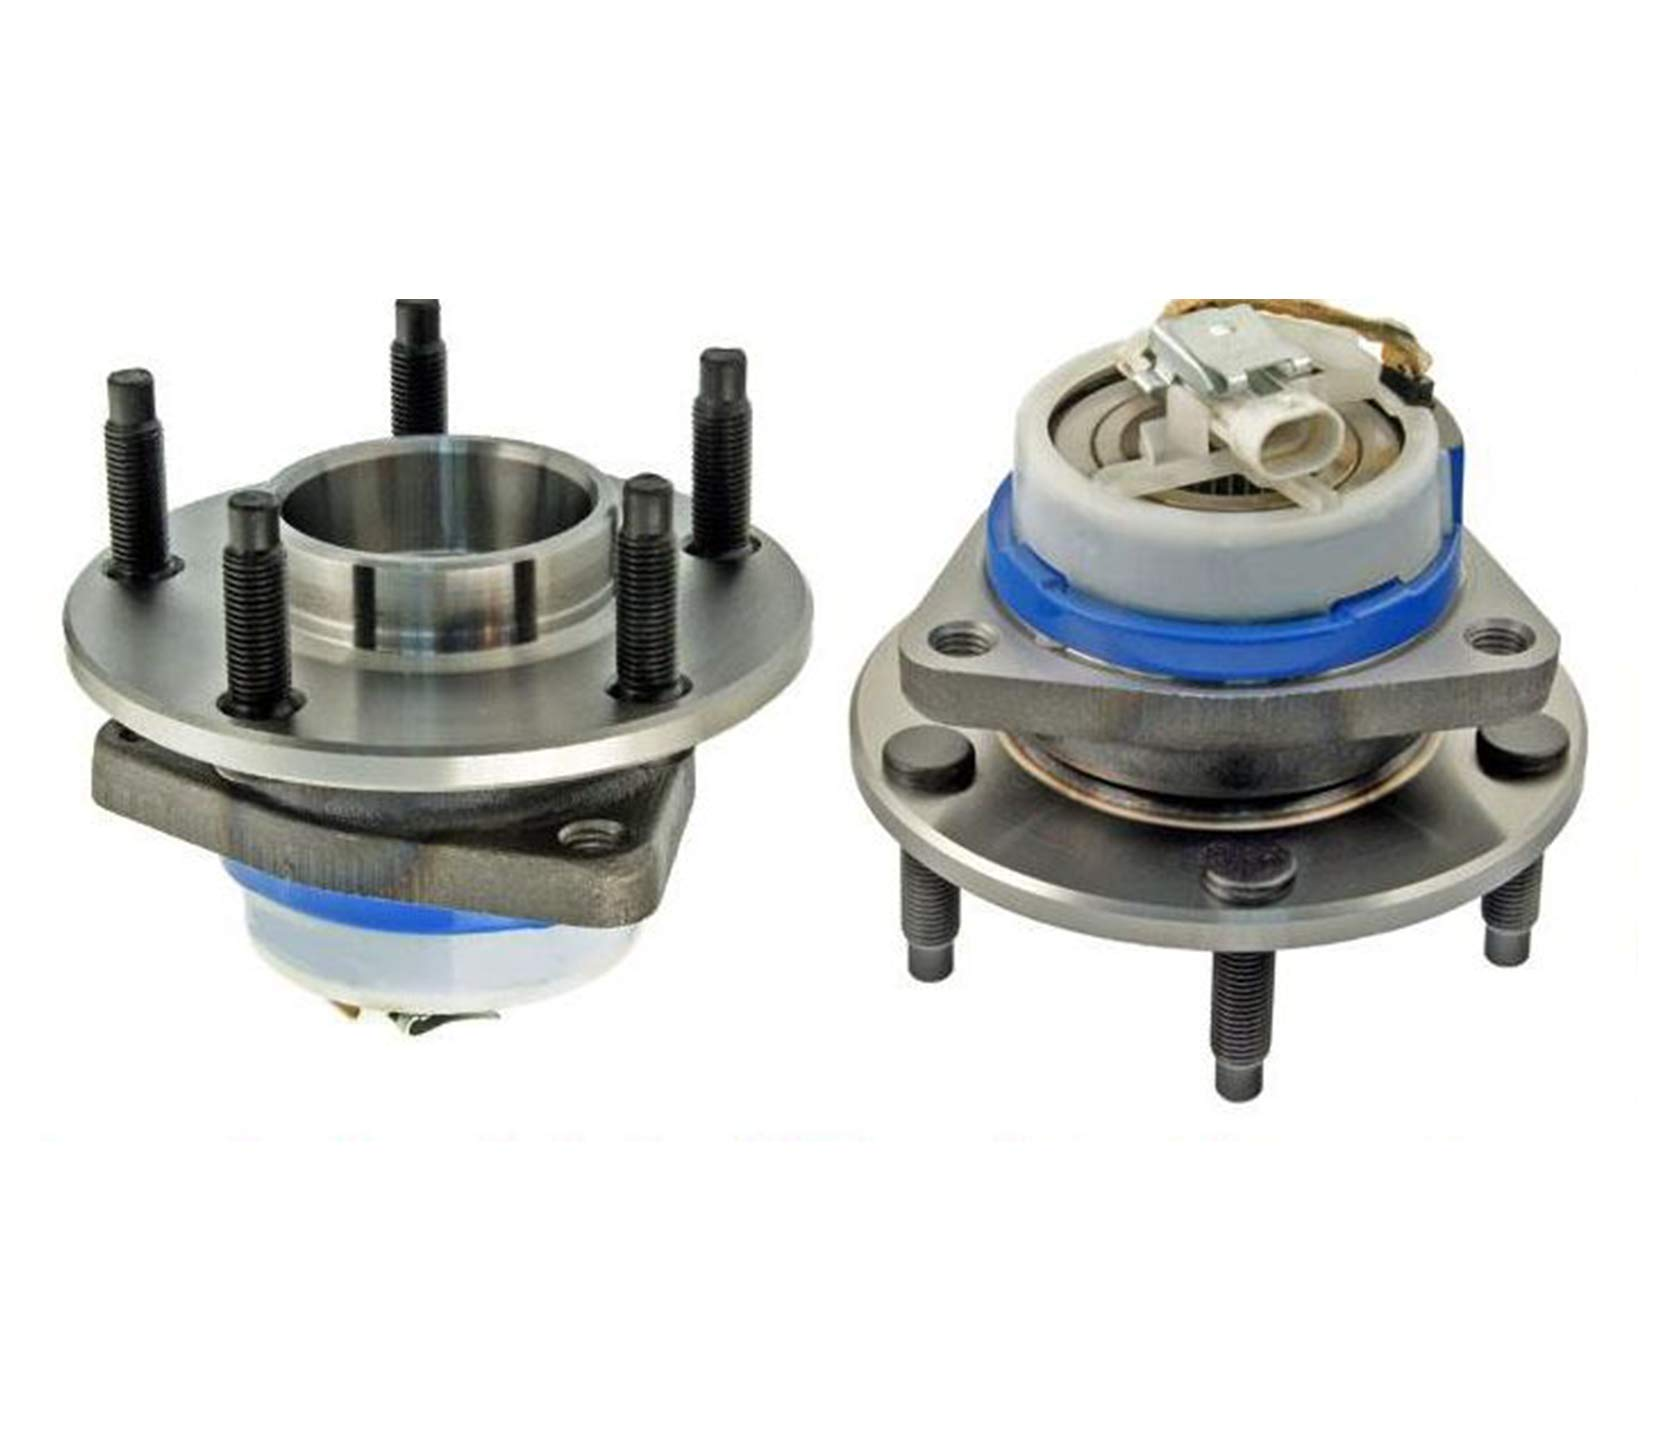 100% New Left & Right New Rear Wheel Hub Bearing for Chevrolet Corvette 97-08 by Mac Auto Parts